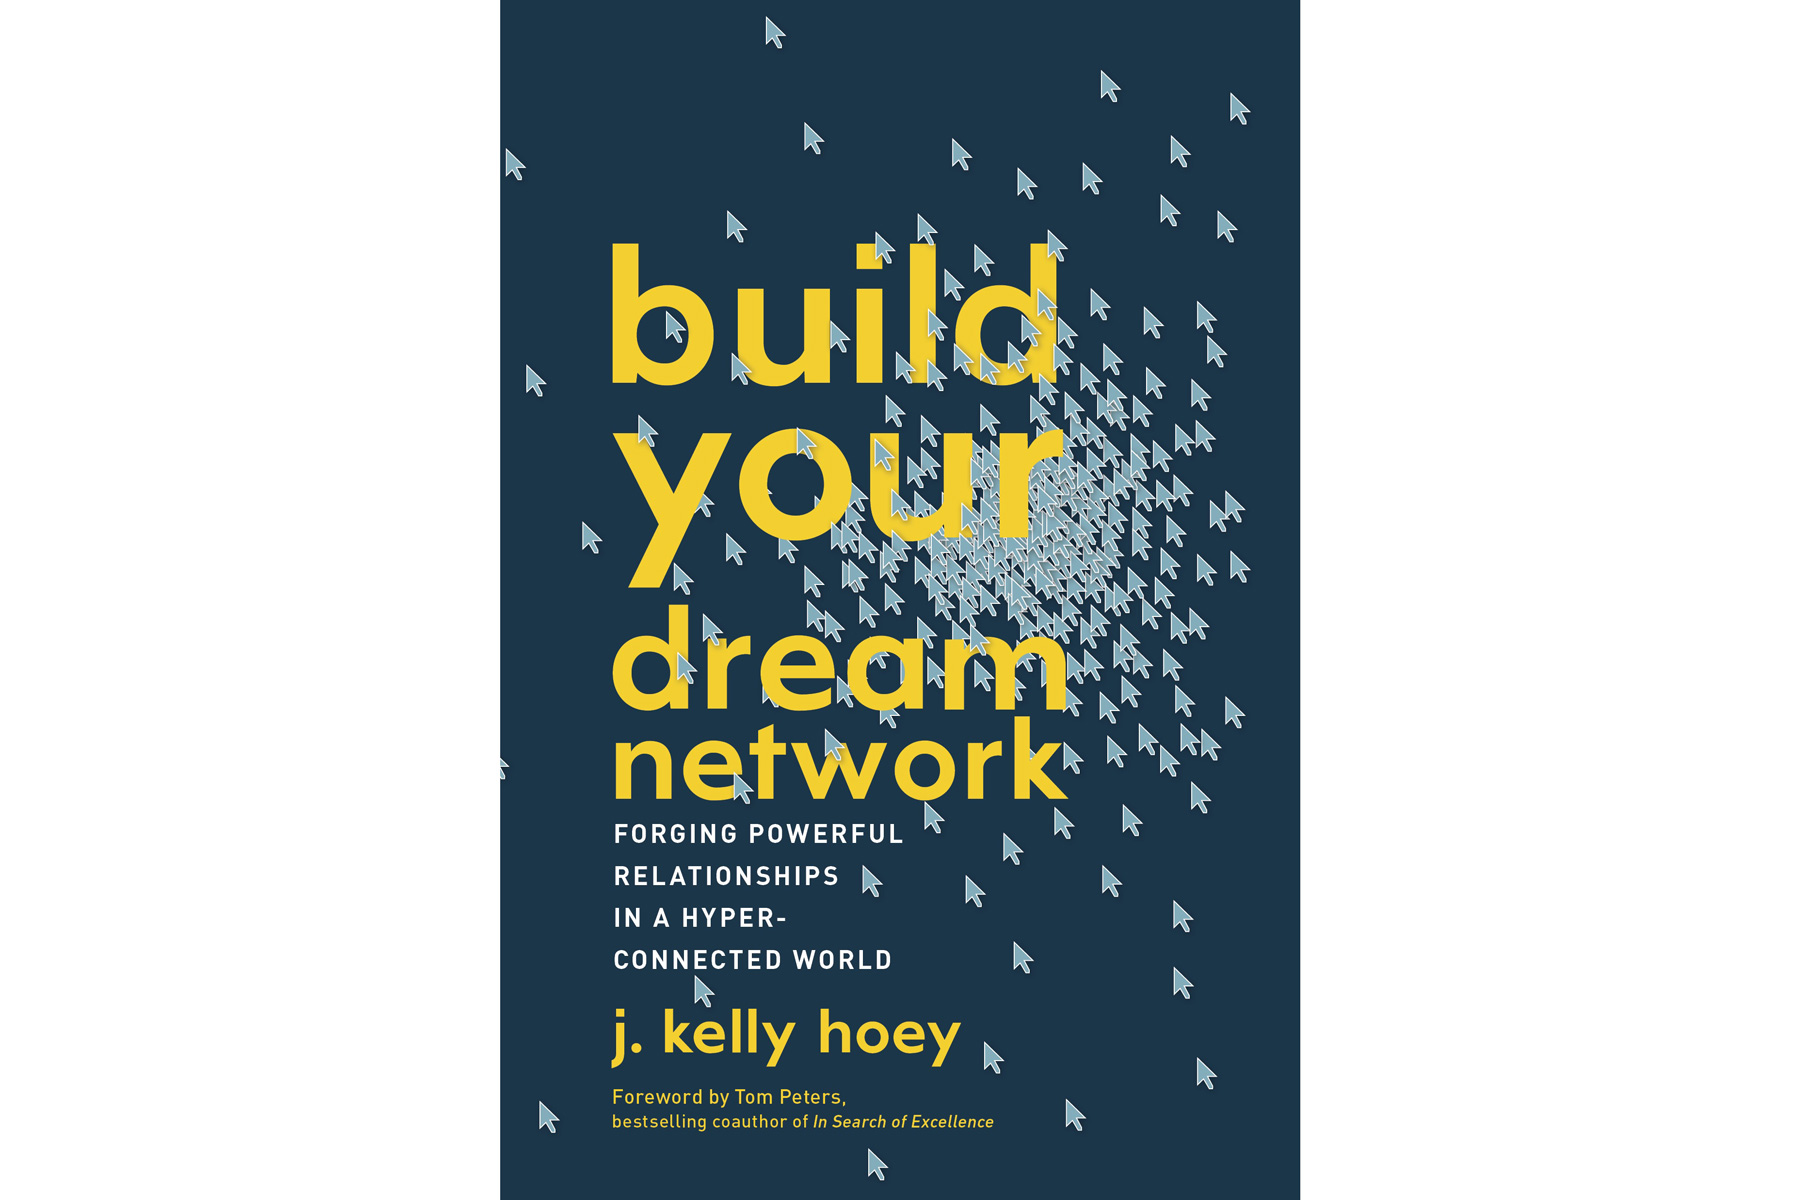 Build Your Dream Network, by J. Kelly Hoey